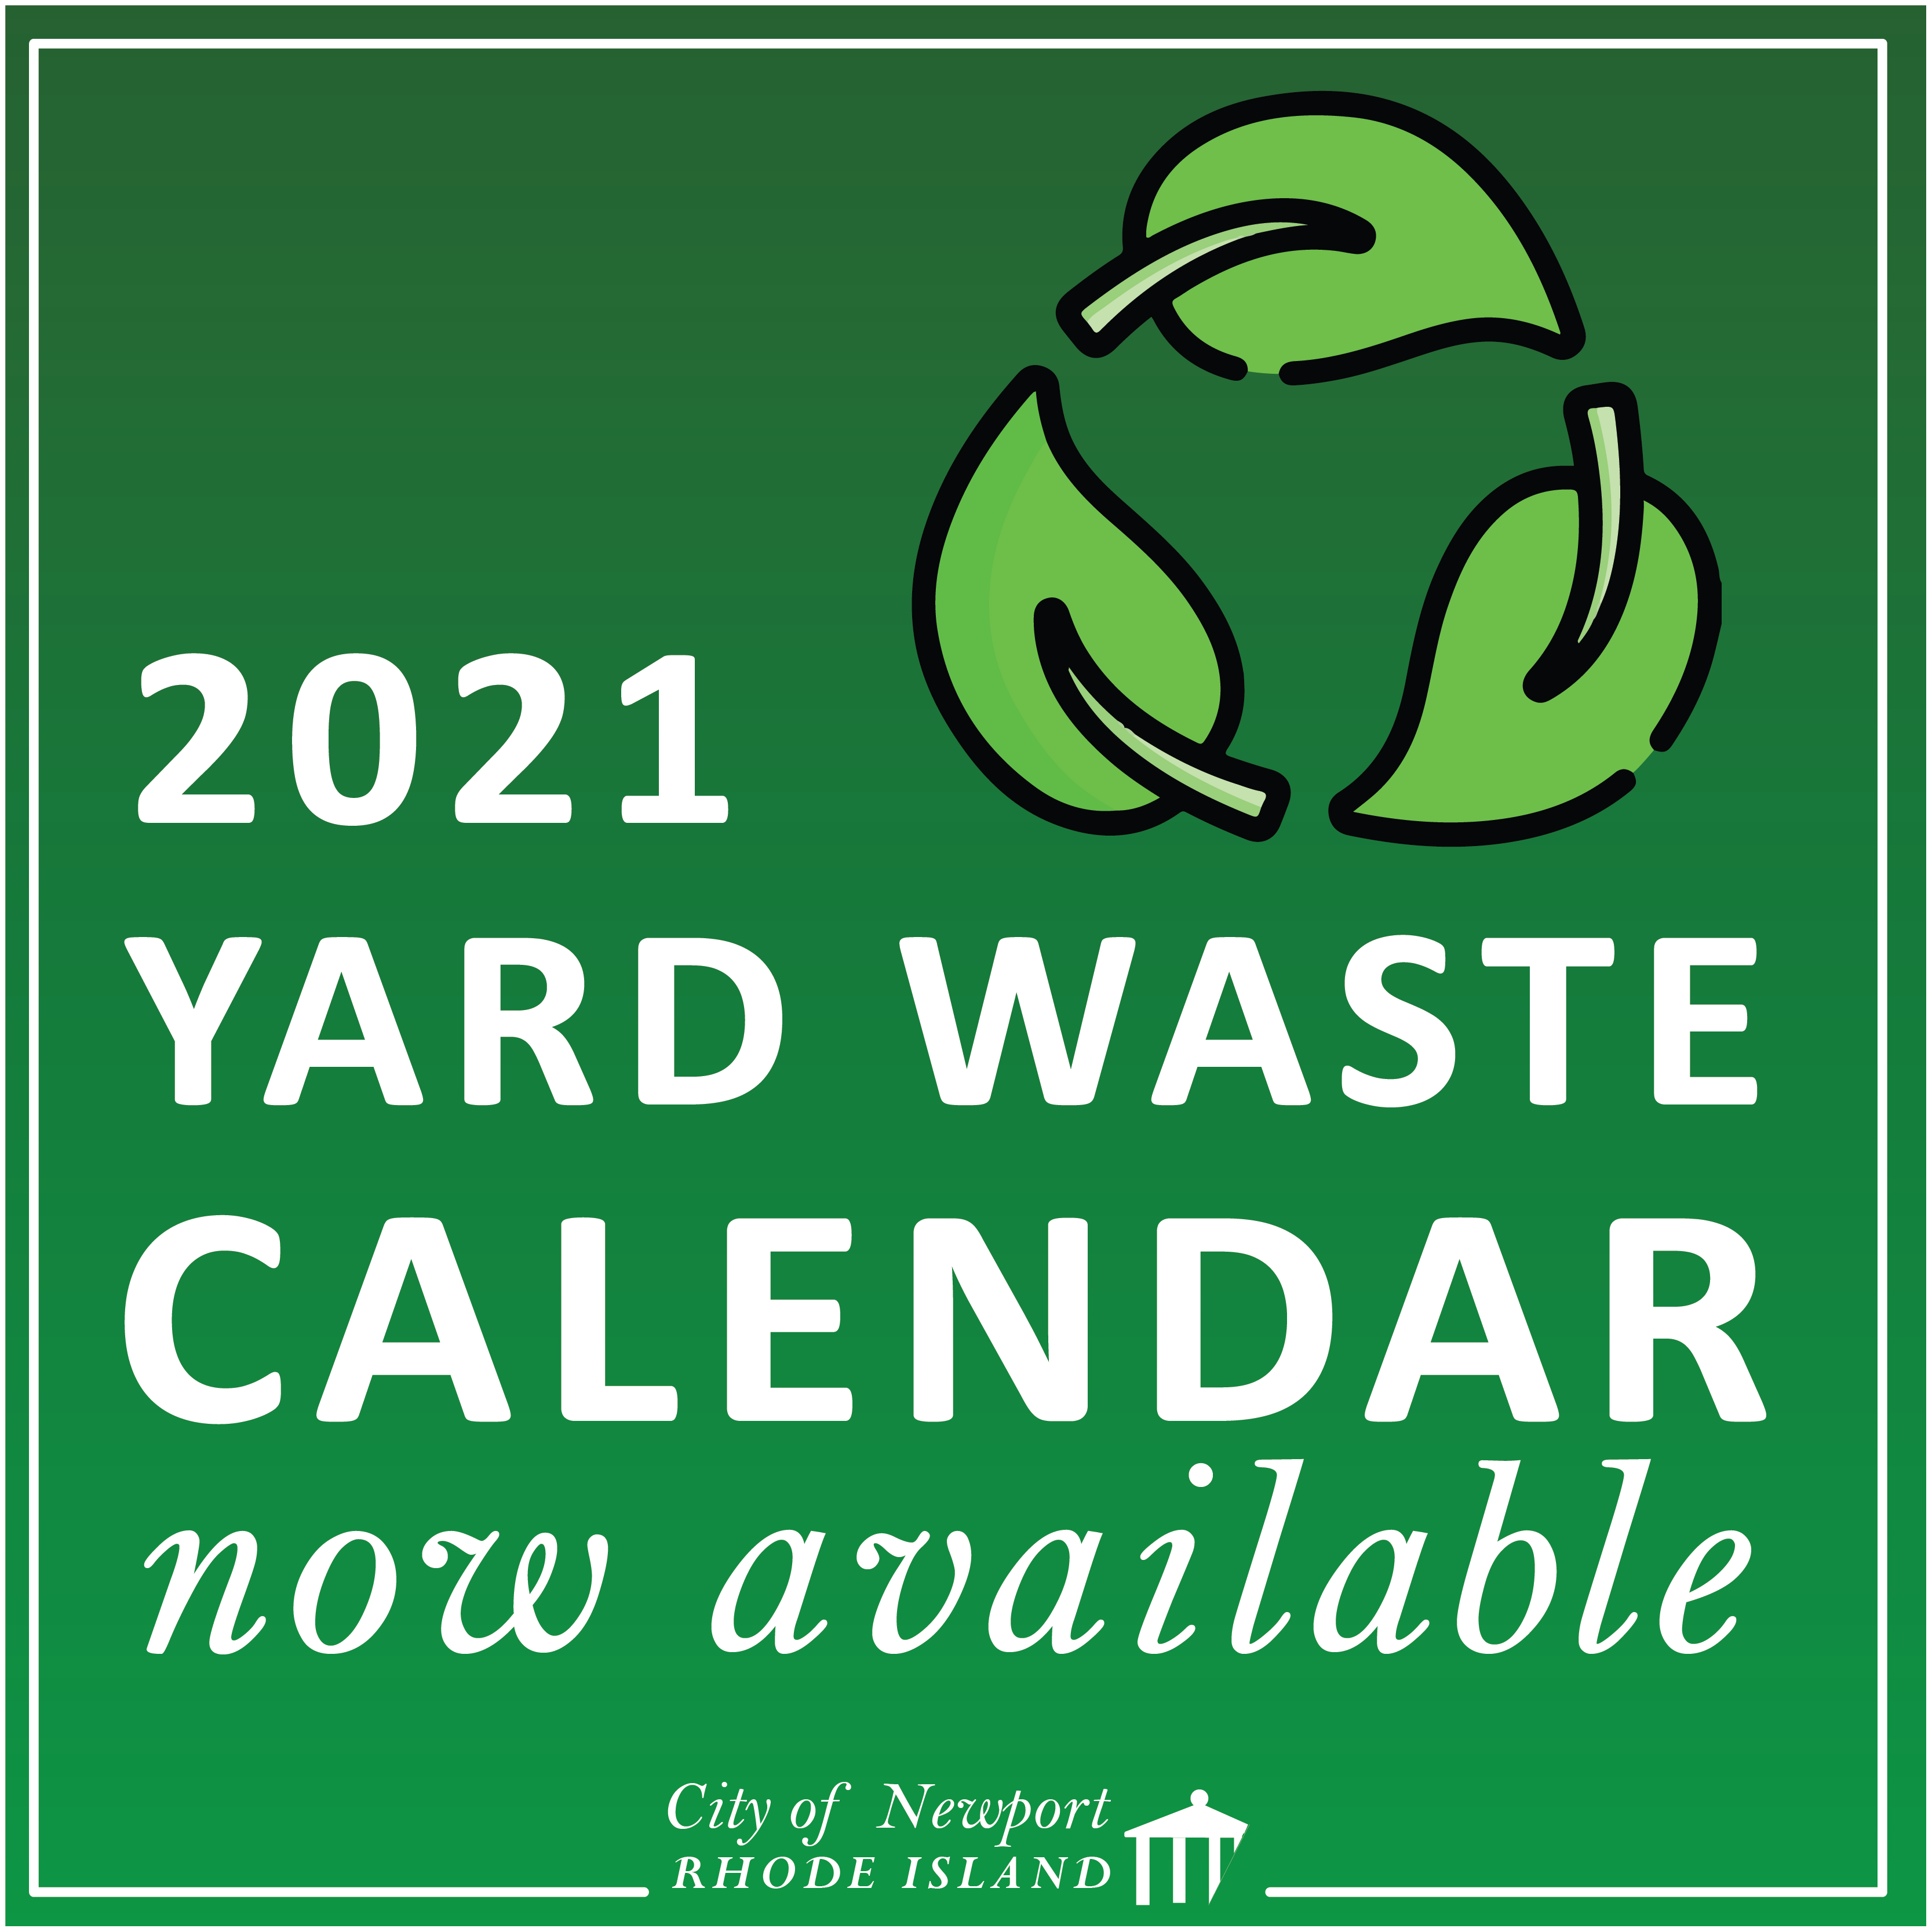 Download the 2021 Yard Waste Calendar!